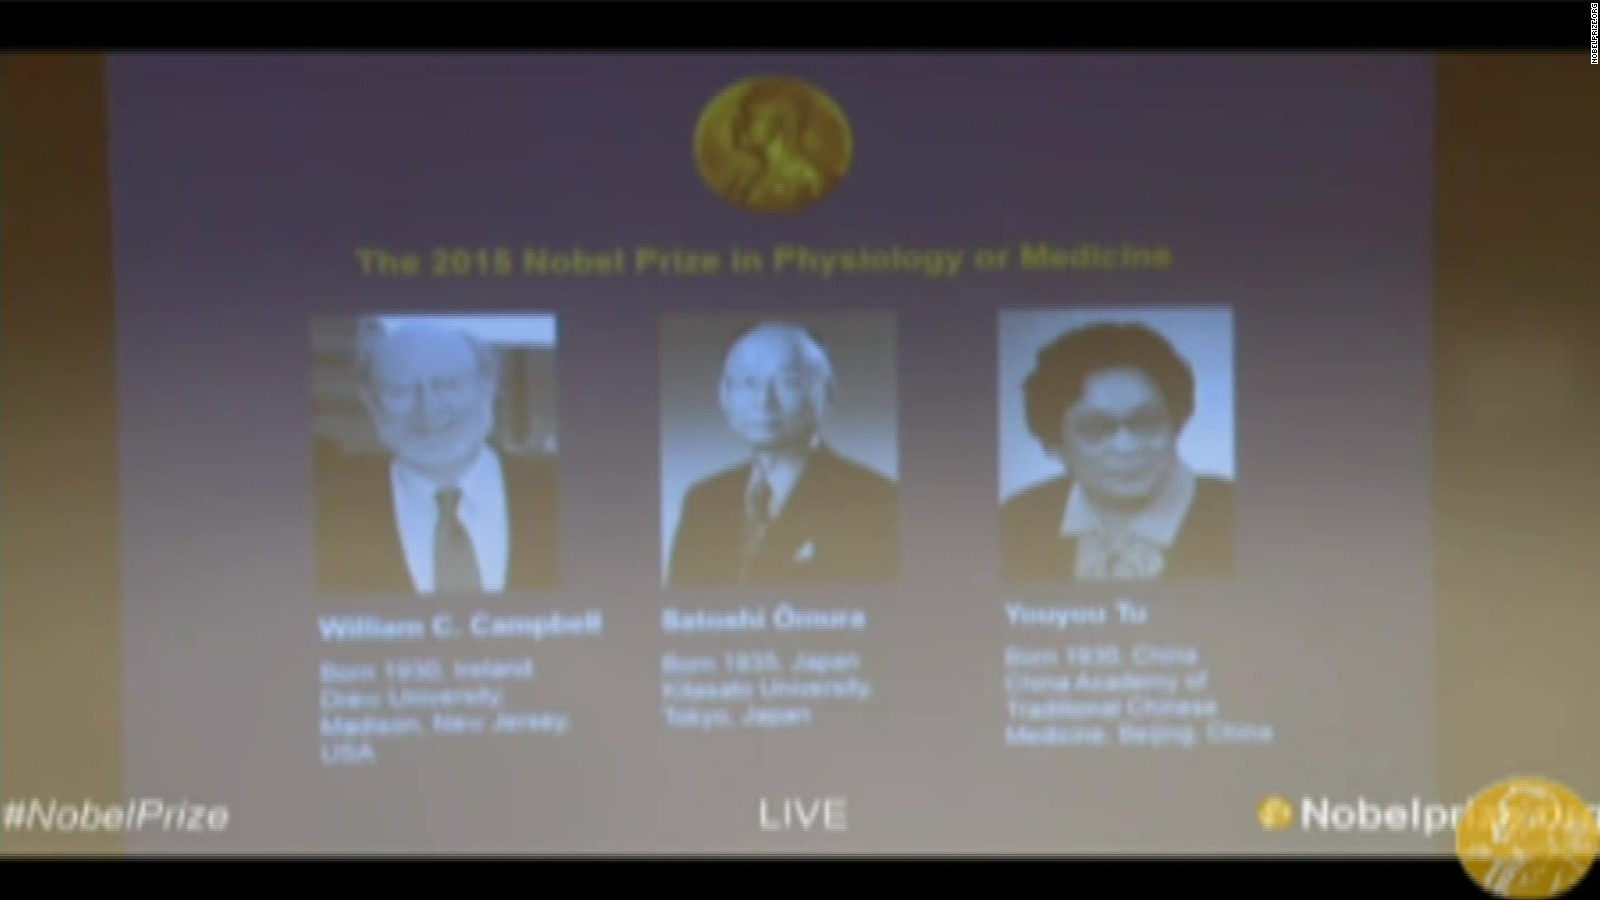 3 scientists share Nobel Prize for medicine for work on parasitic diseases